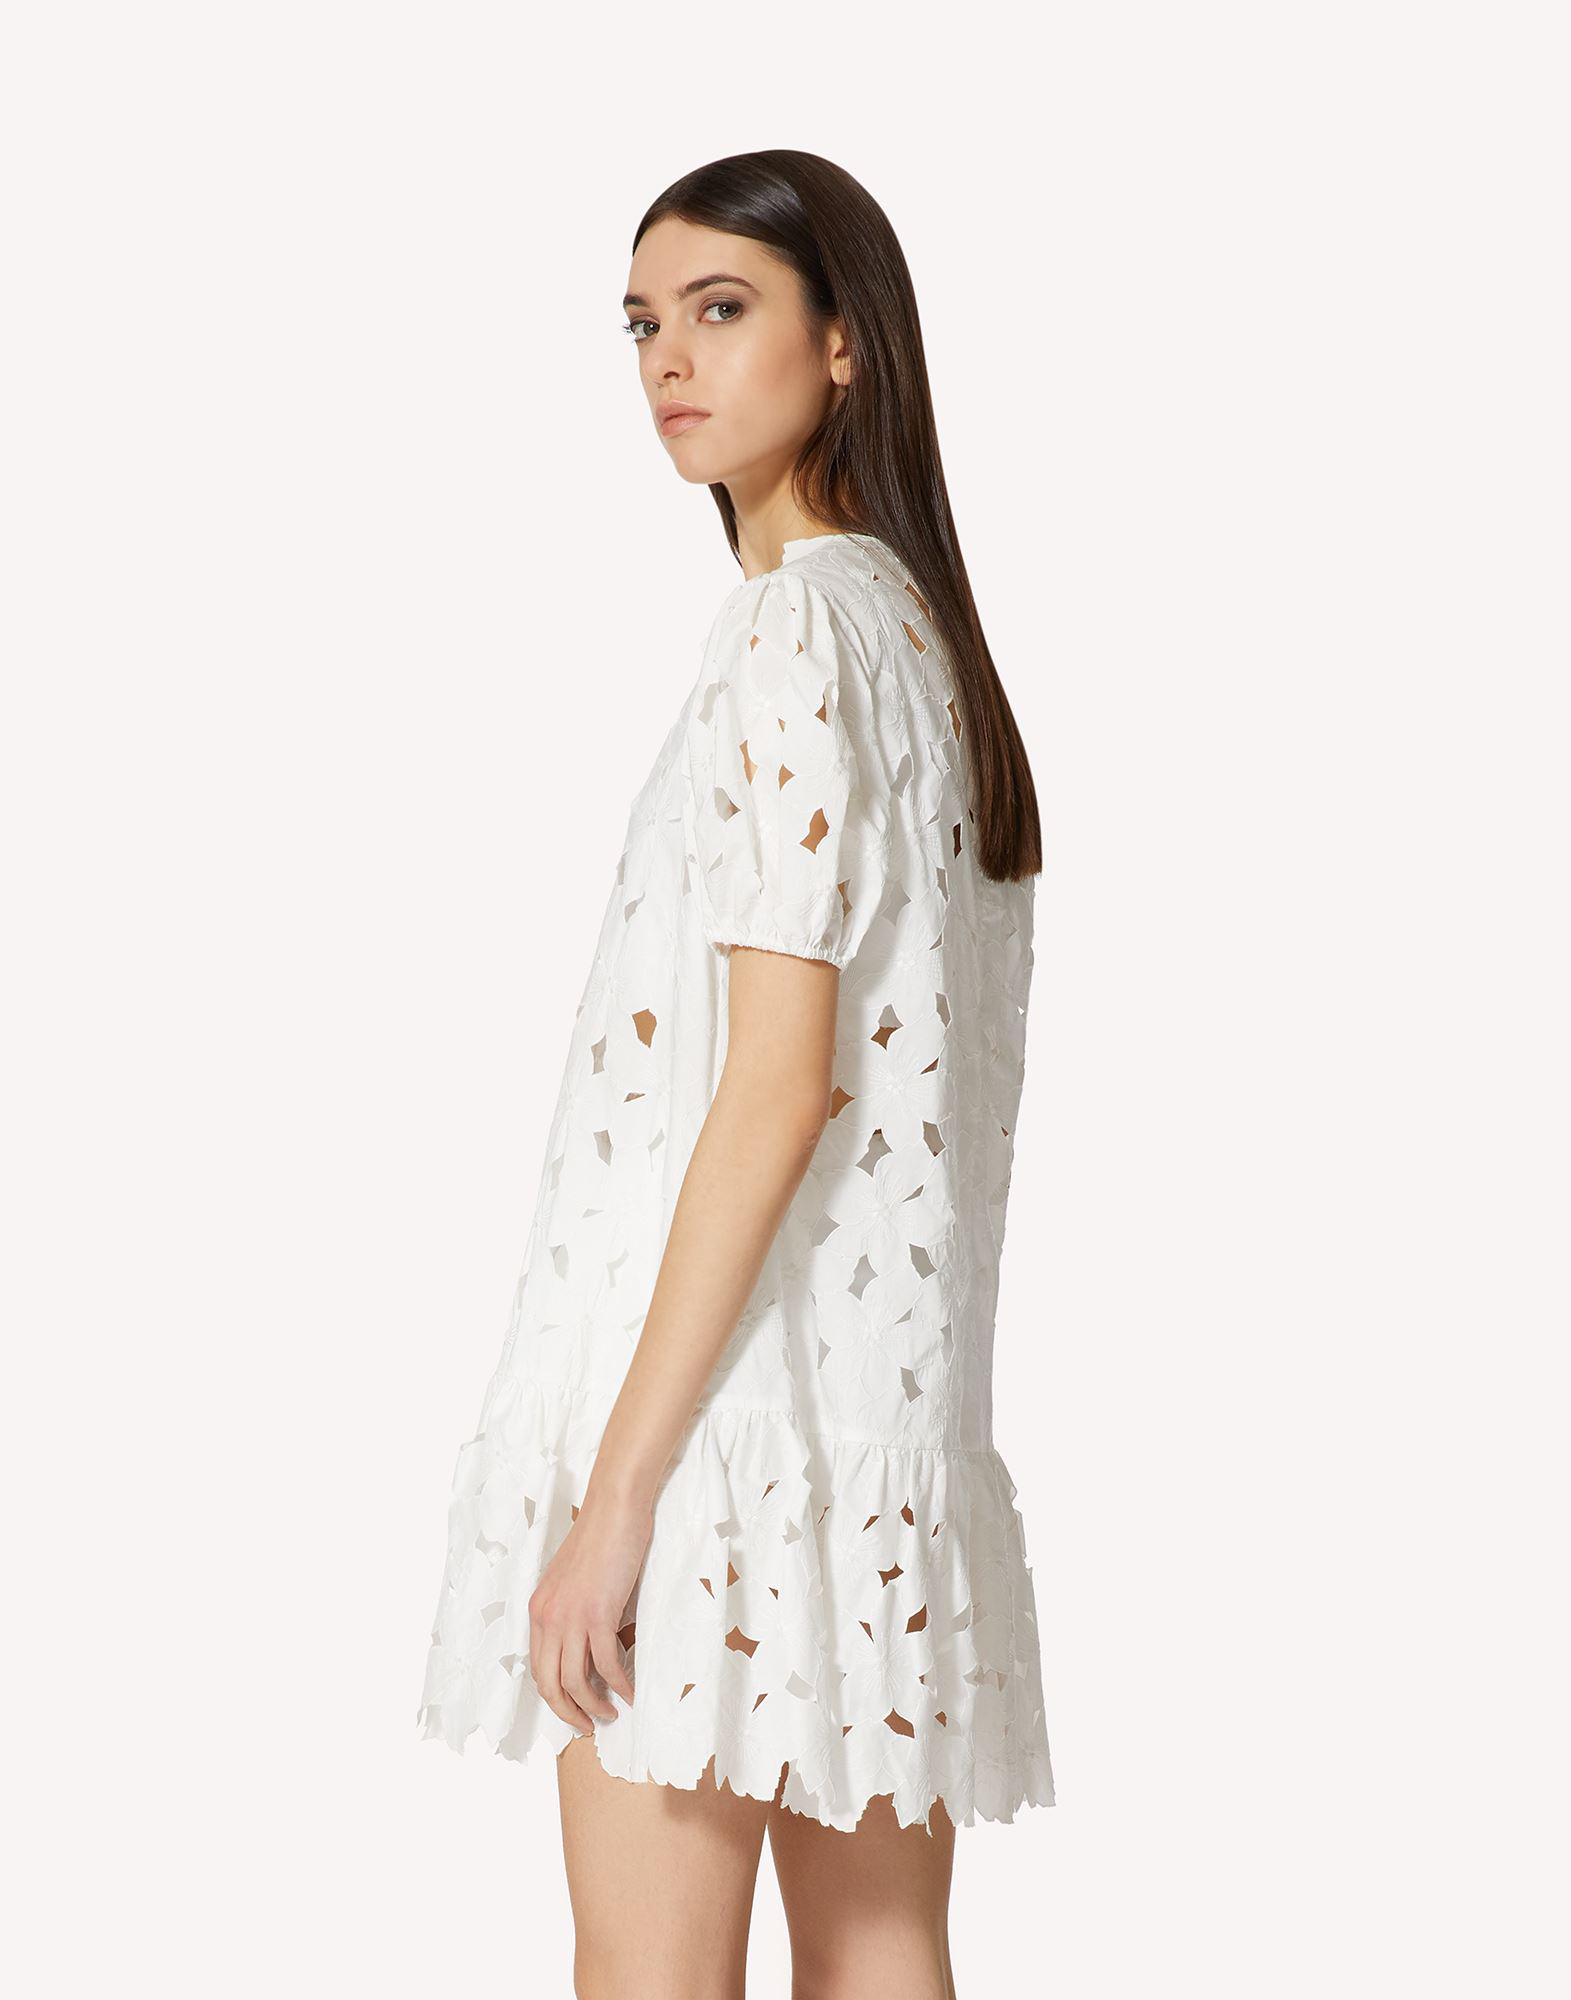 COTTON POPLIN DRESS WITH CUT-OUT EMBROIDERY 2